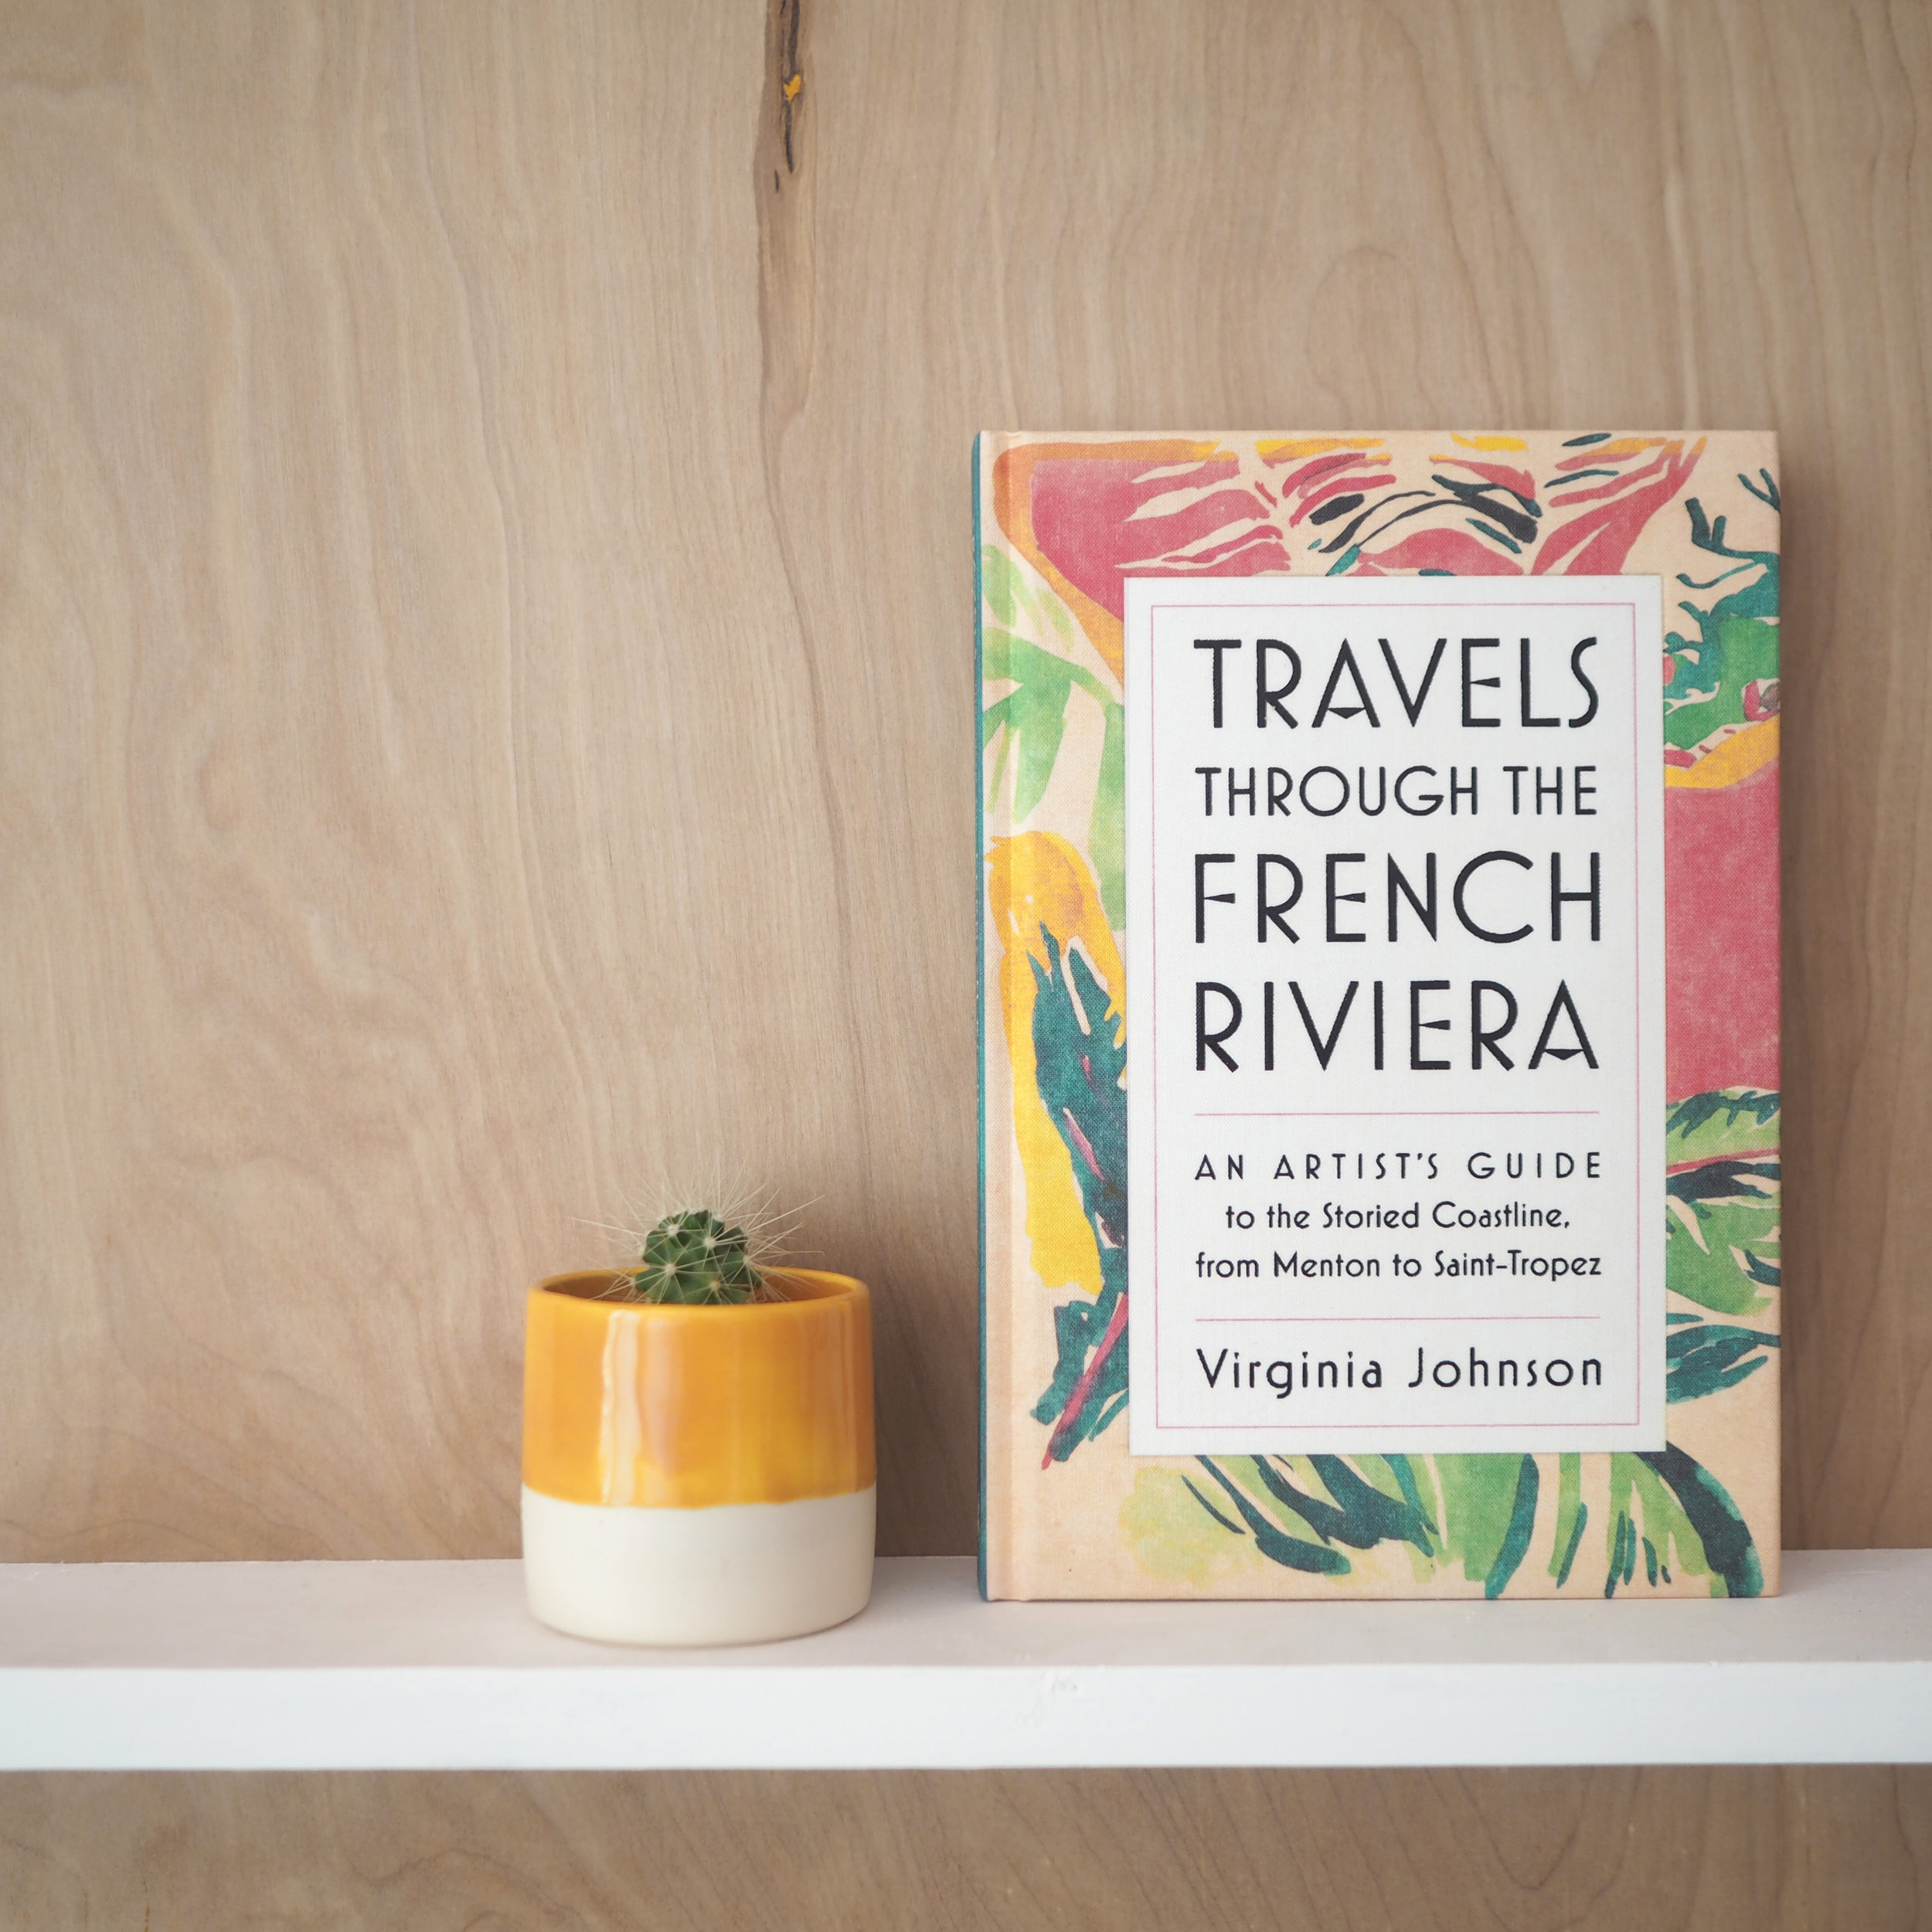 Travels through the French Riveria by Virginia Johnson